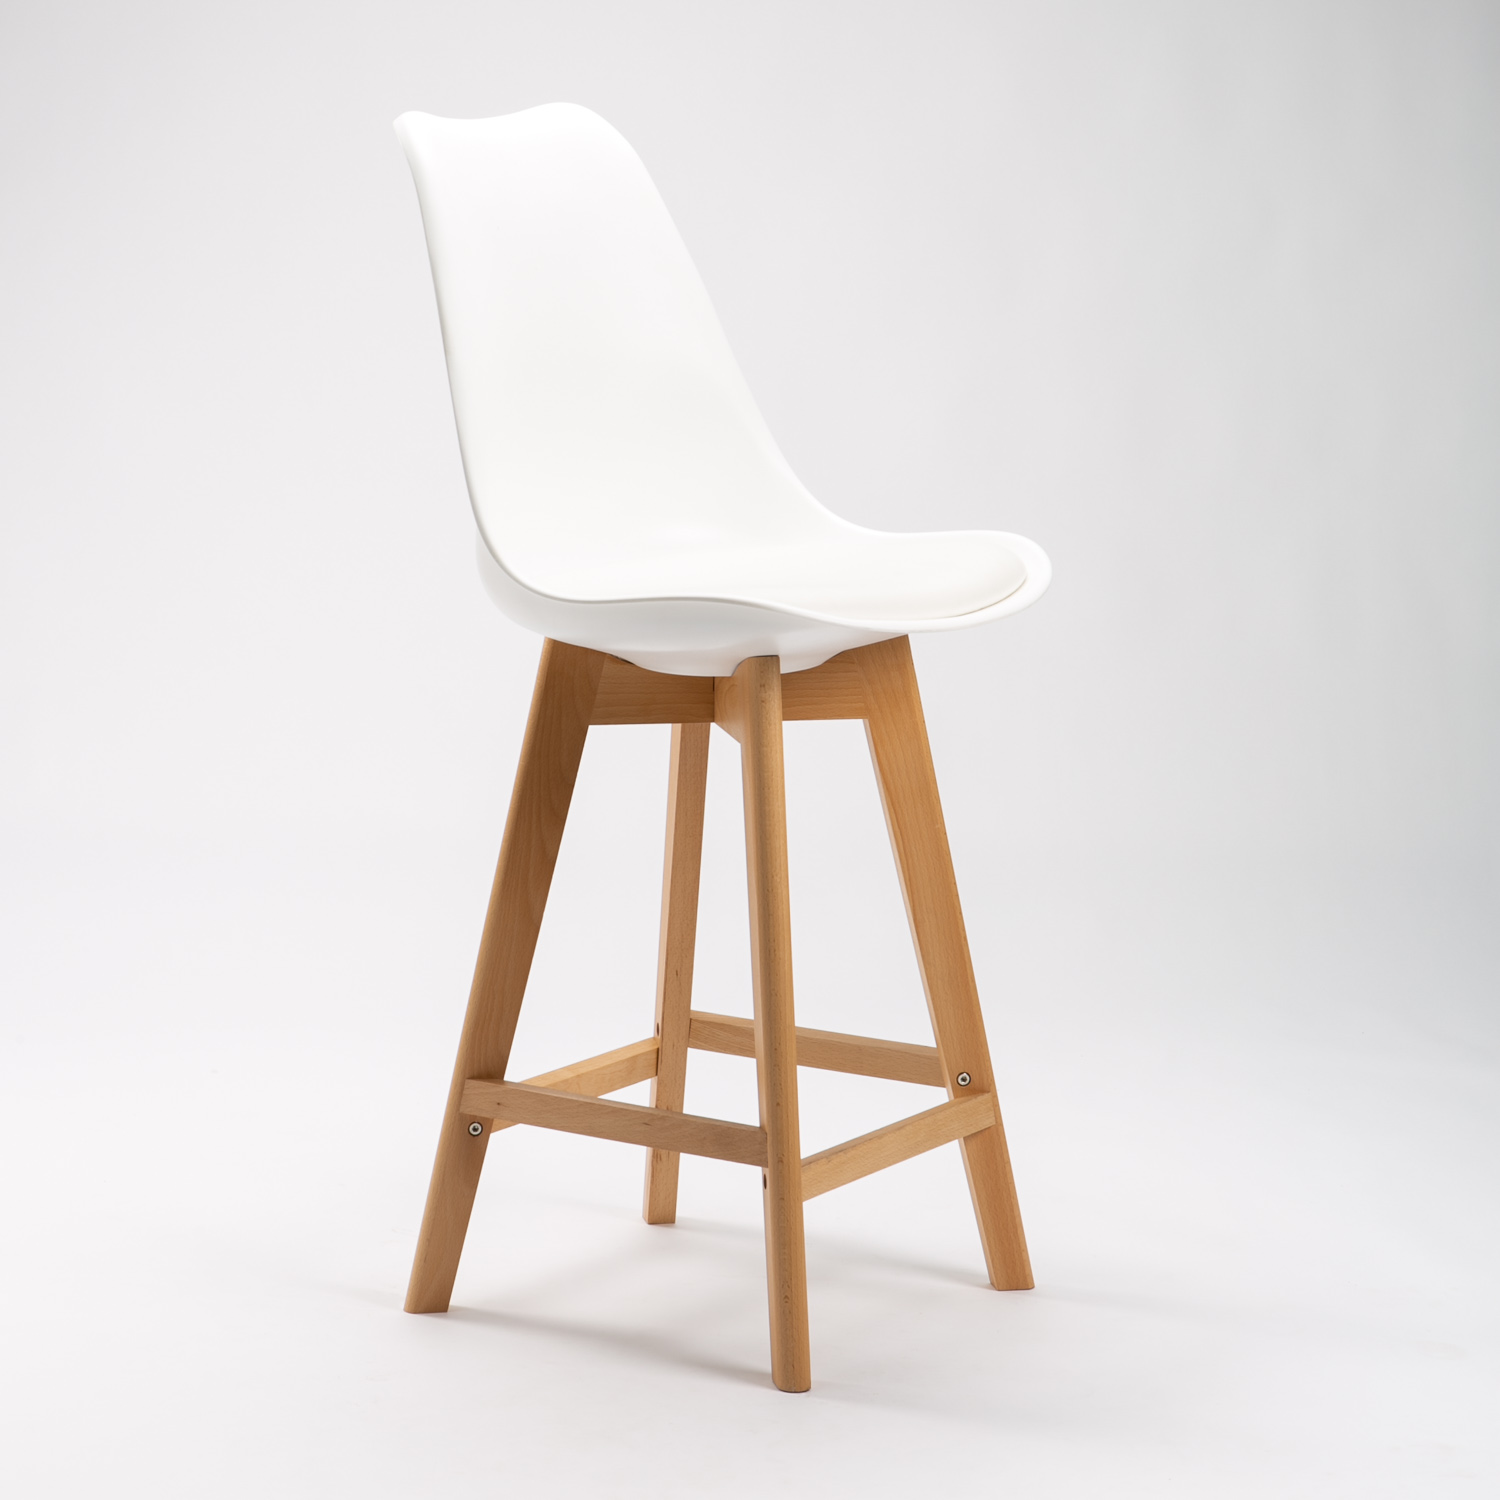 EVA WOODEN LEG KITCHEN STOOL